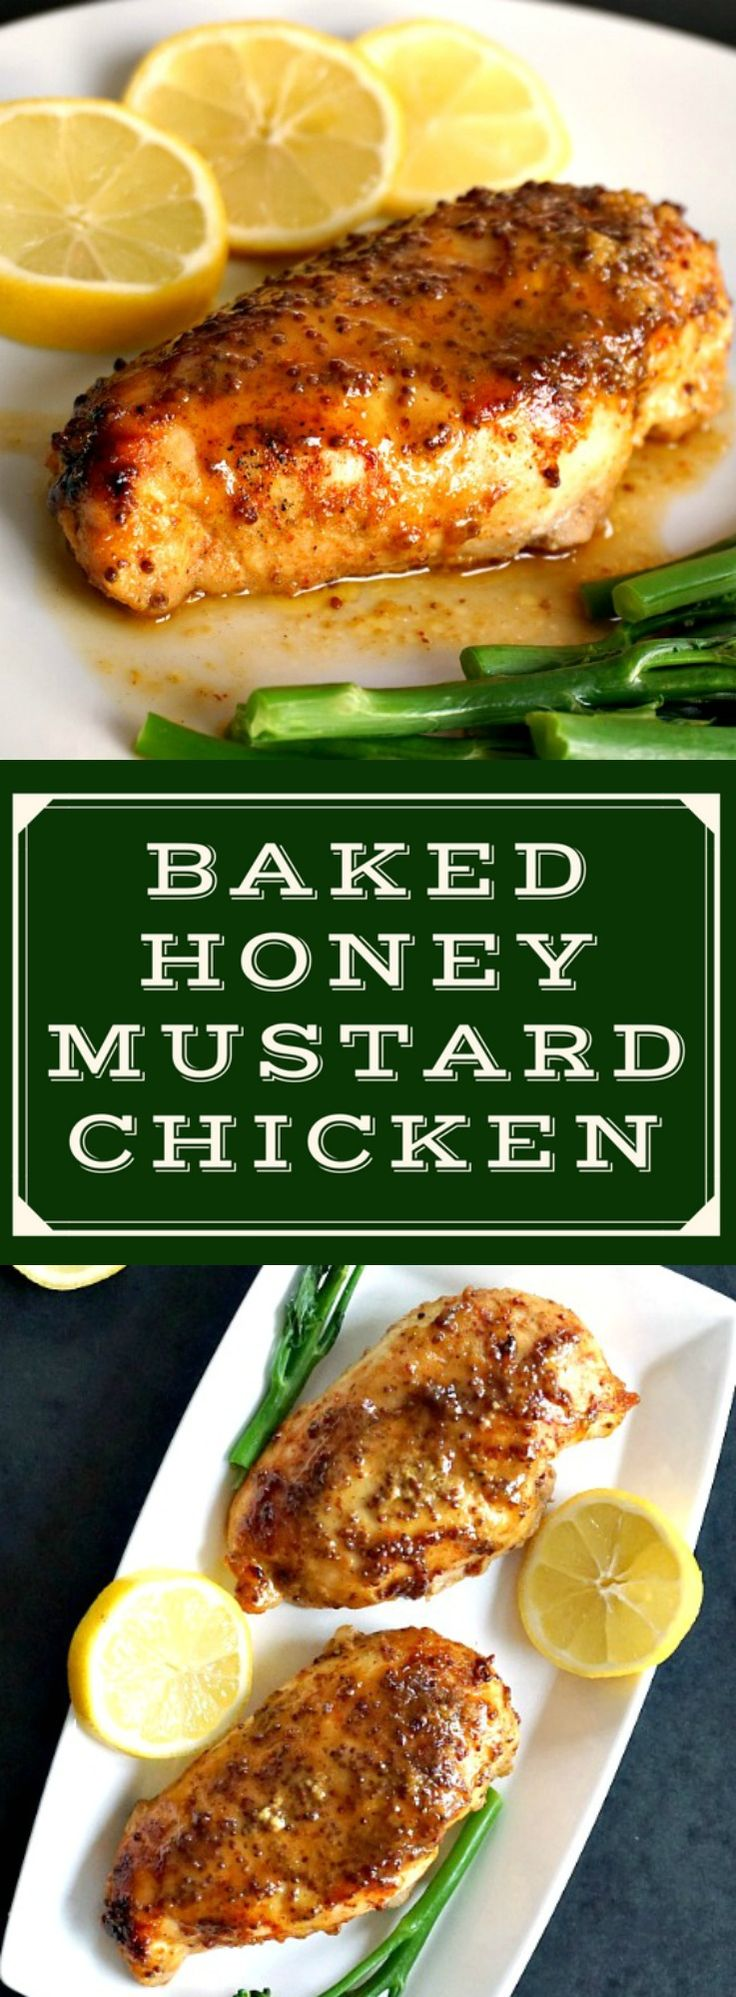 Baked honey mustard chicken breast with a touch of lemon, an absolutely delicious, low-carb and healthy meal for two. Serve it with broccoli spears or other veggies.